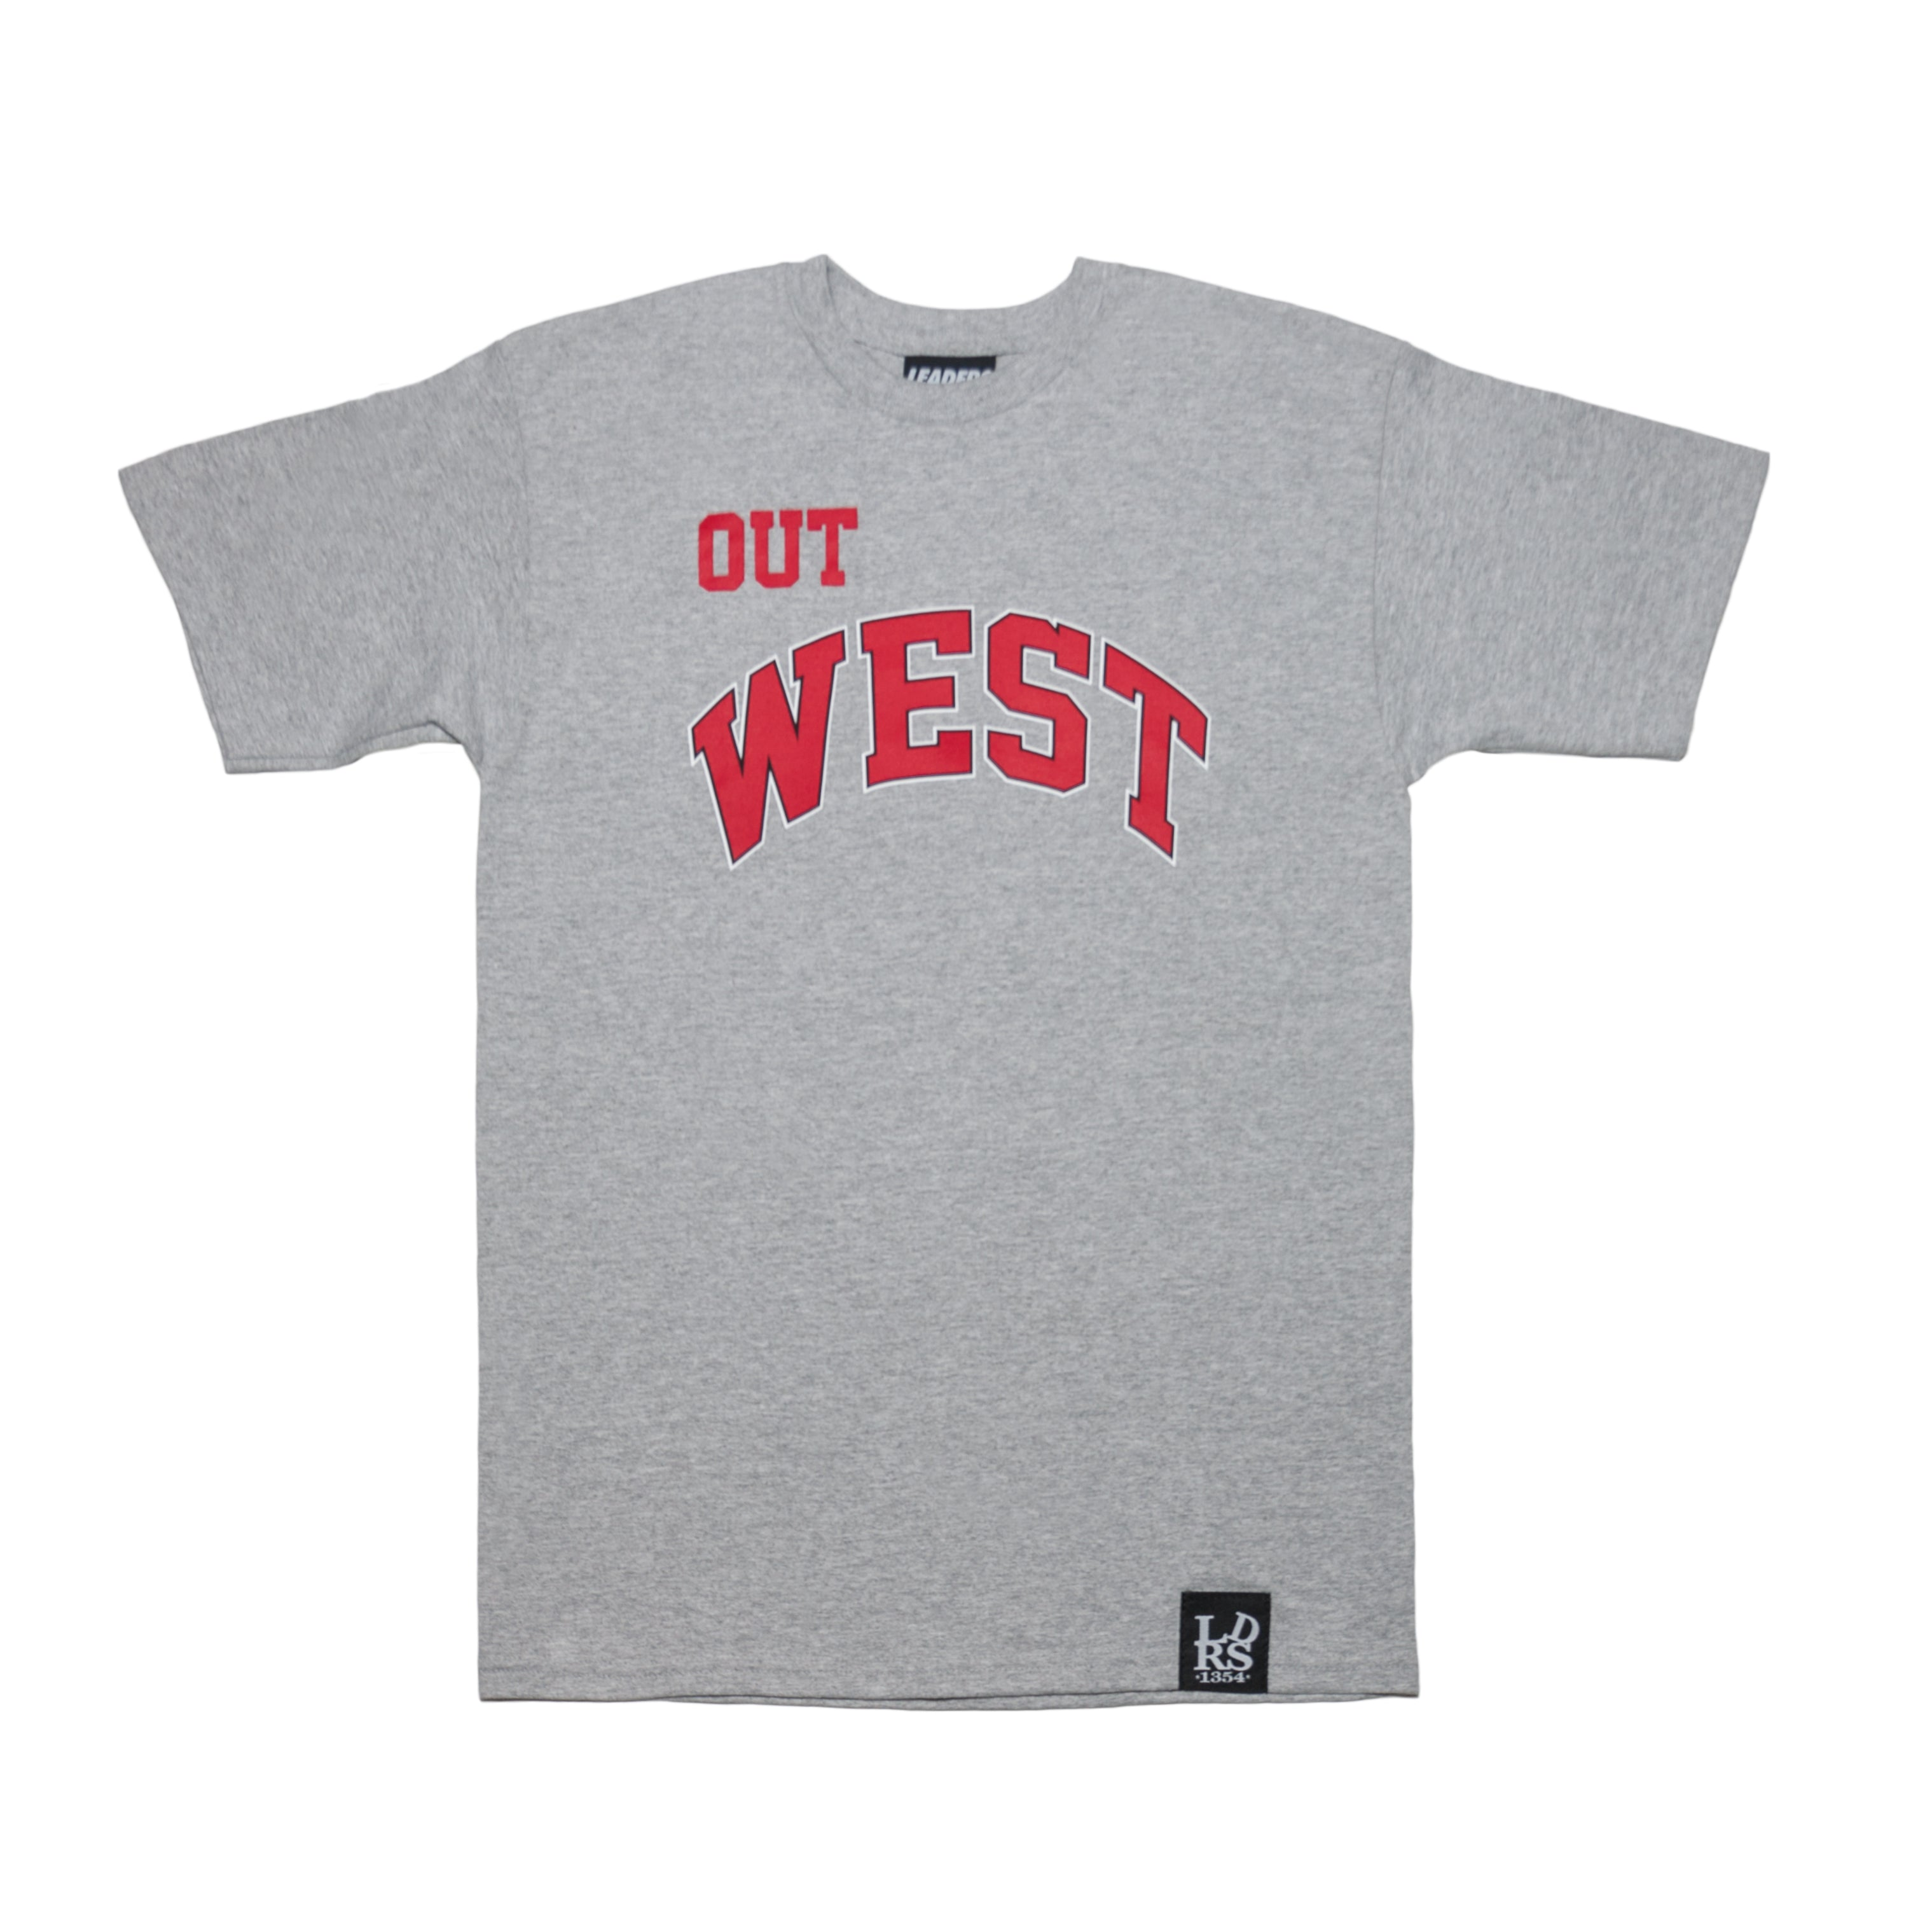 LDRS1354 X WC OUT WEST TEE GREY